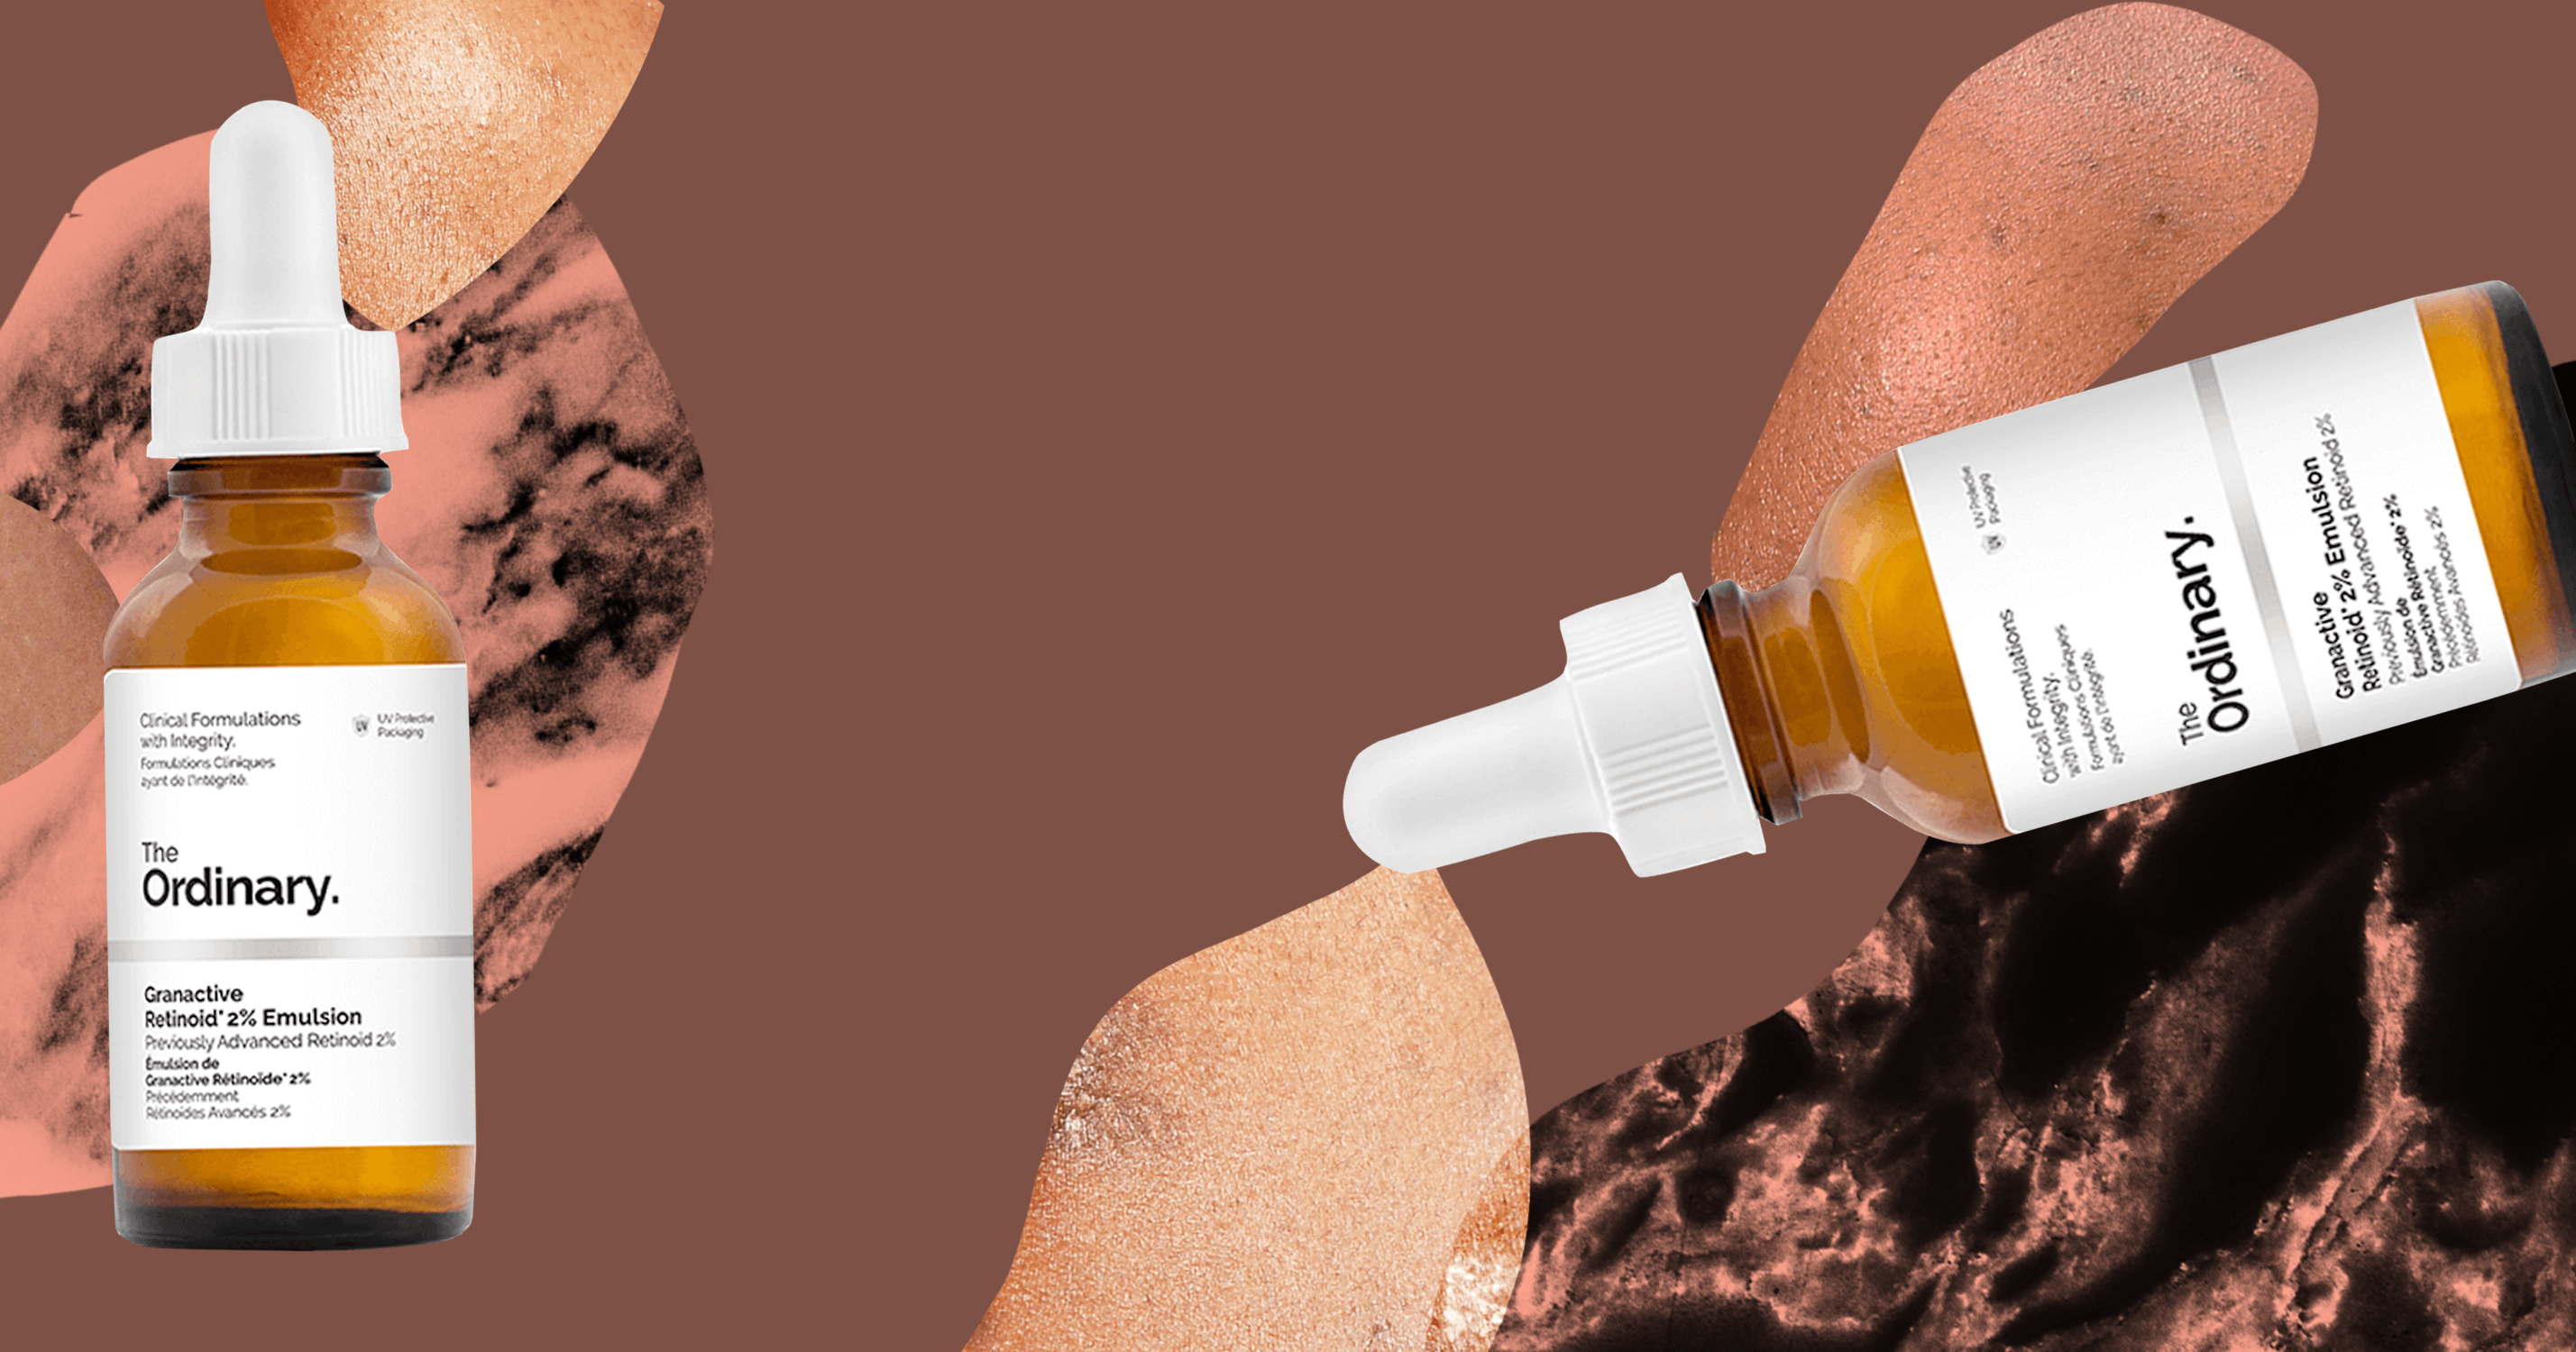 This Dermatologist's Retinol Hack Is A Skincare Game-Changer